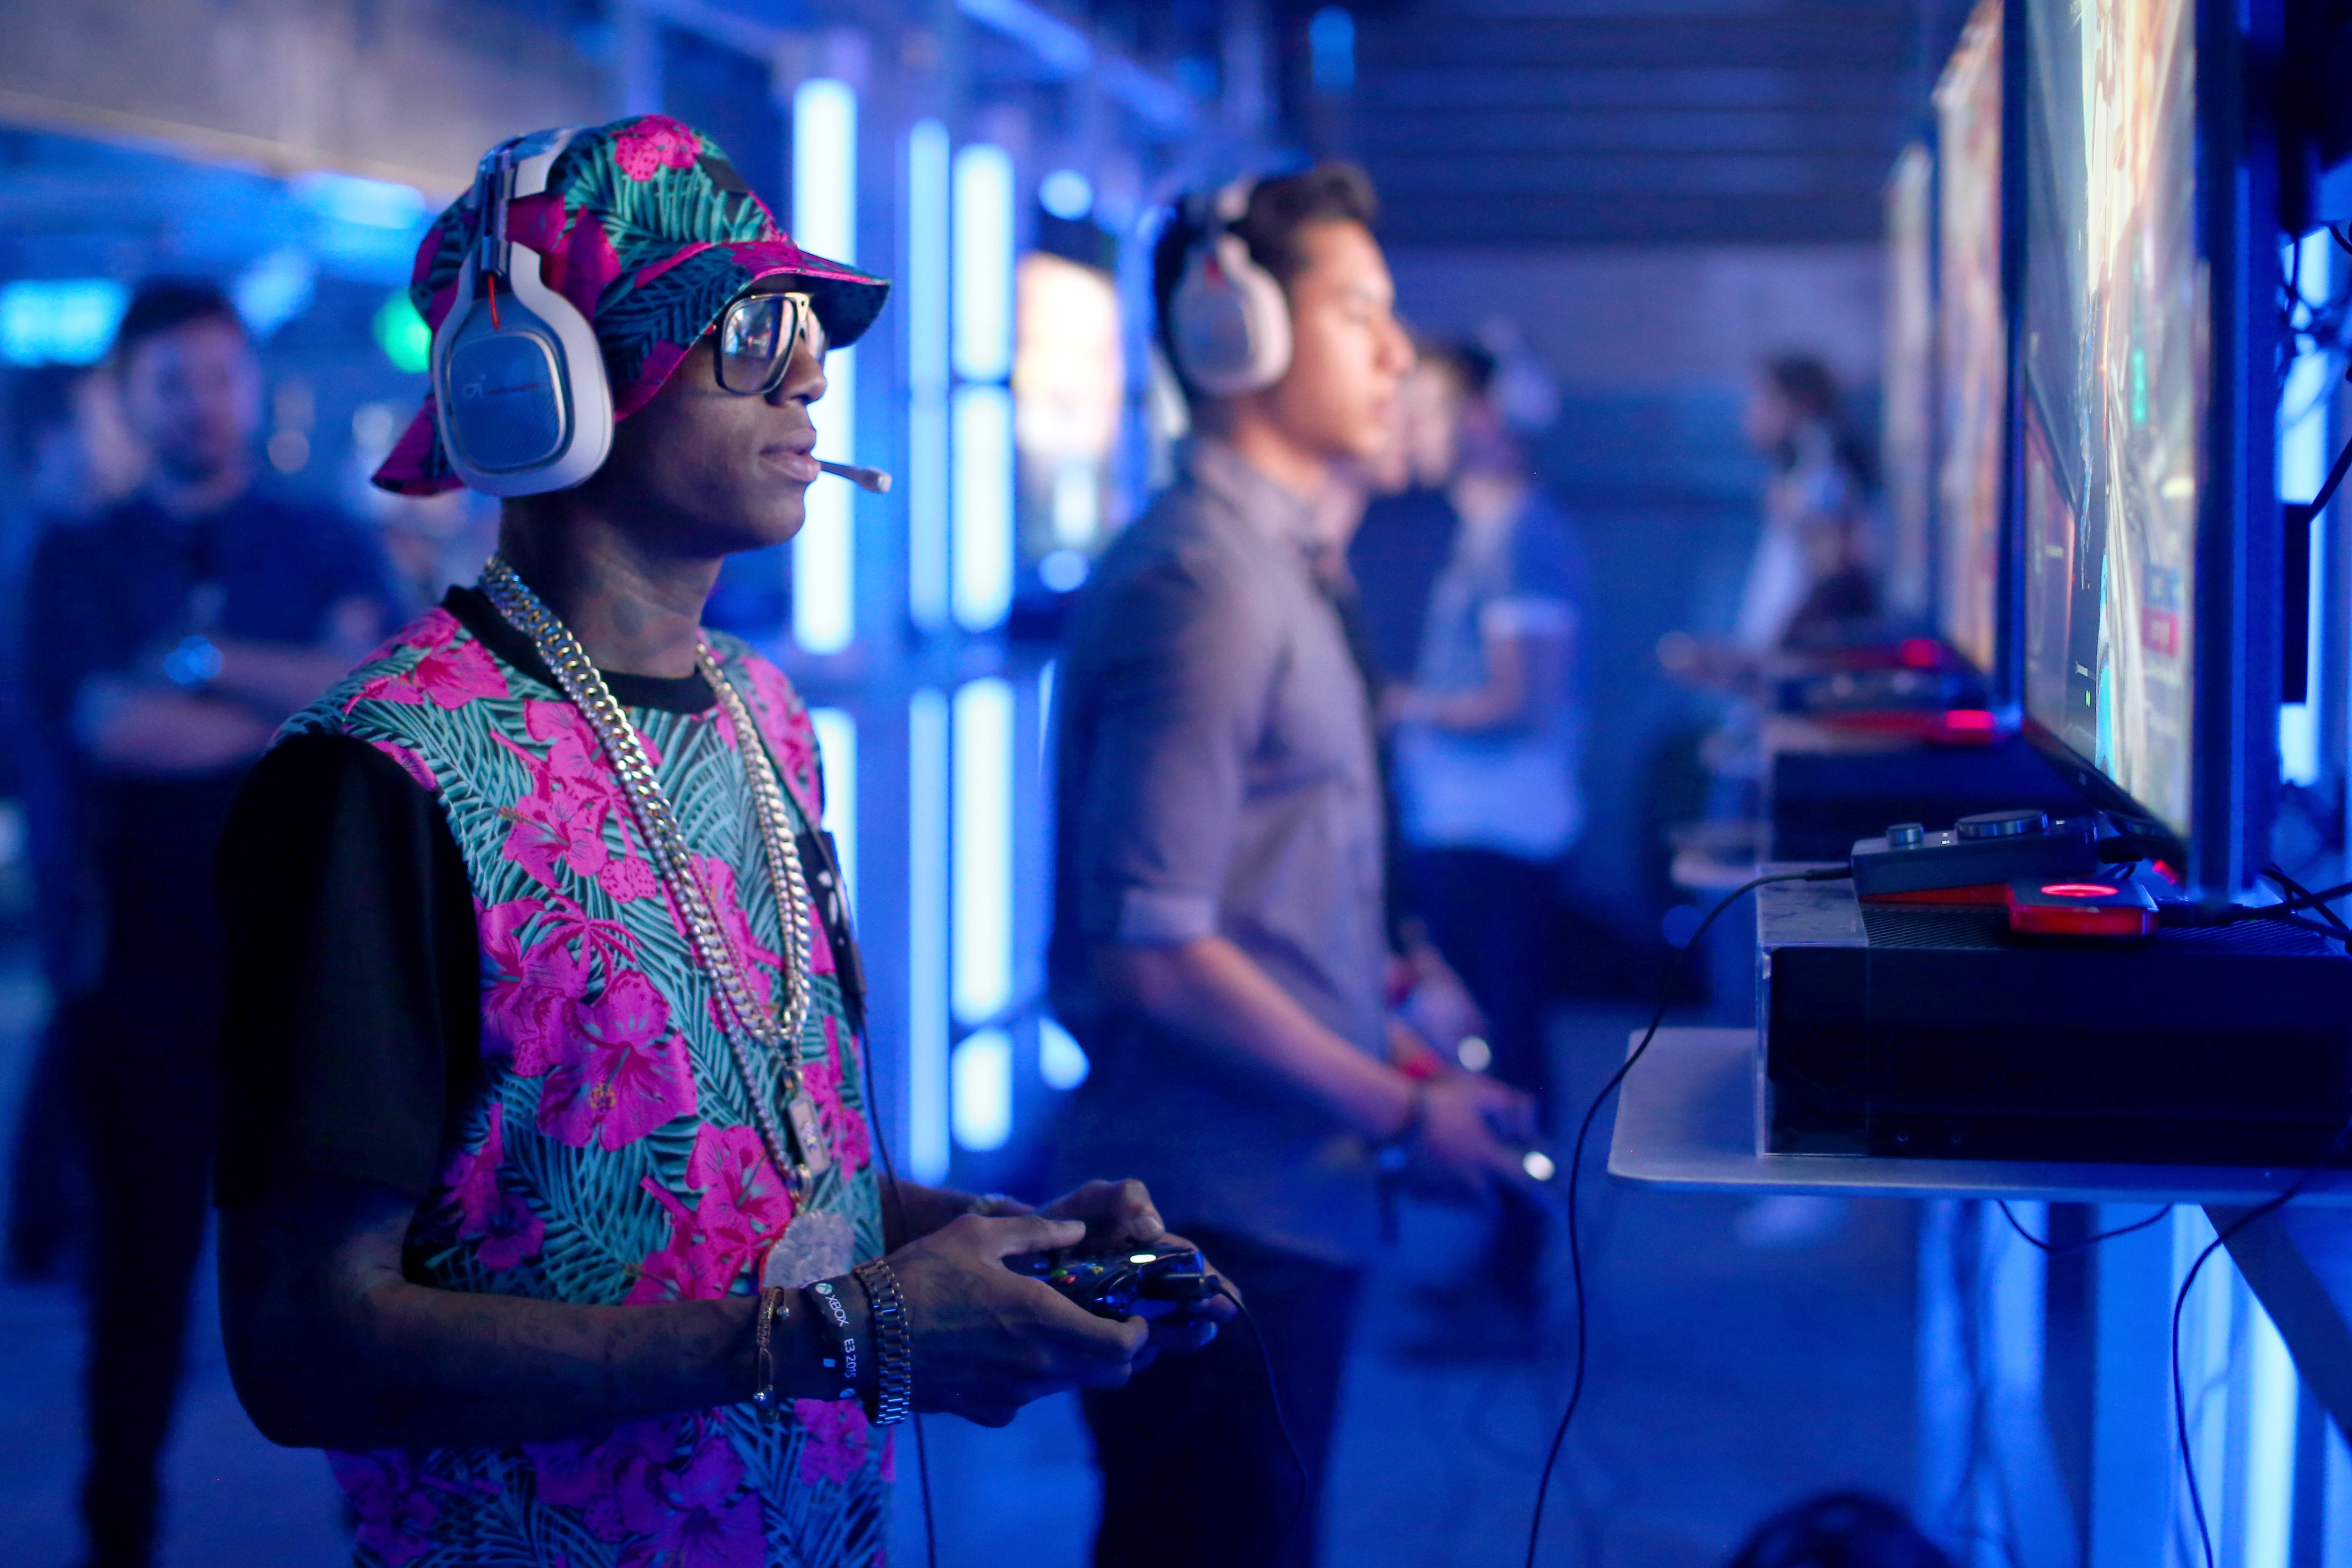 Soulja Boy is selling his own cheap, rebranded video game